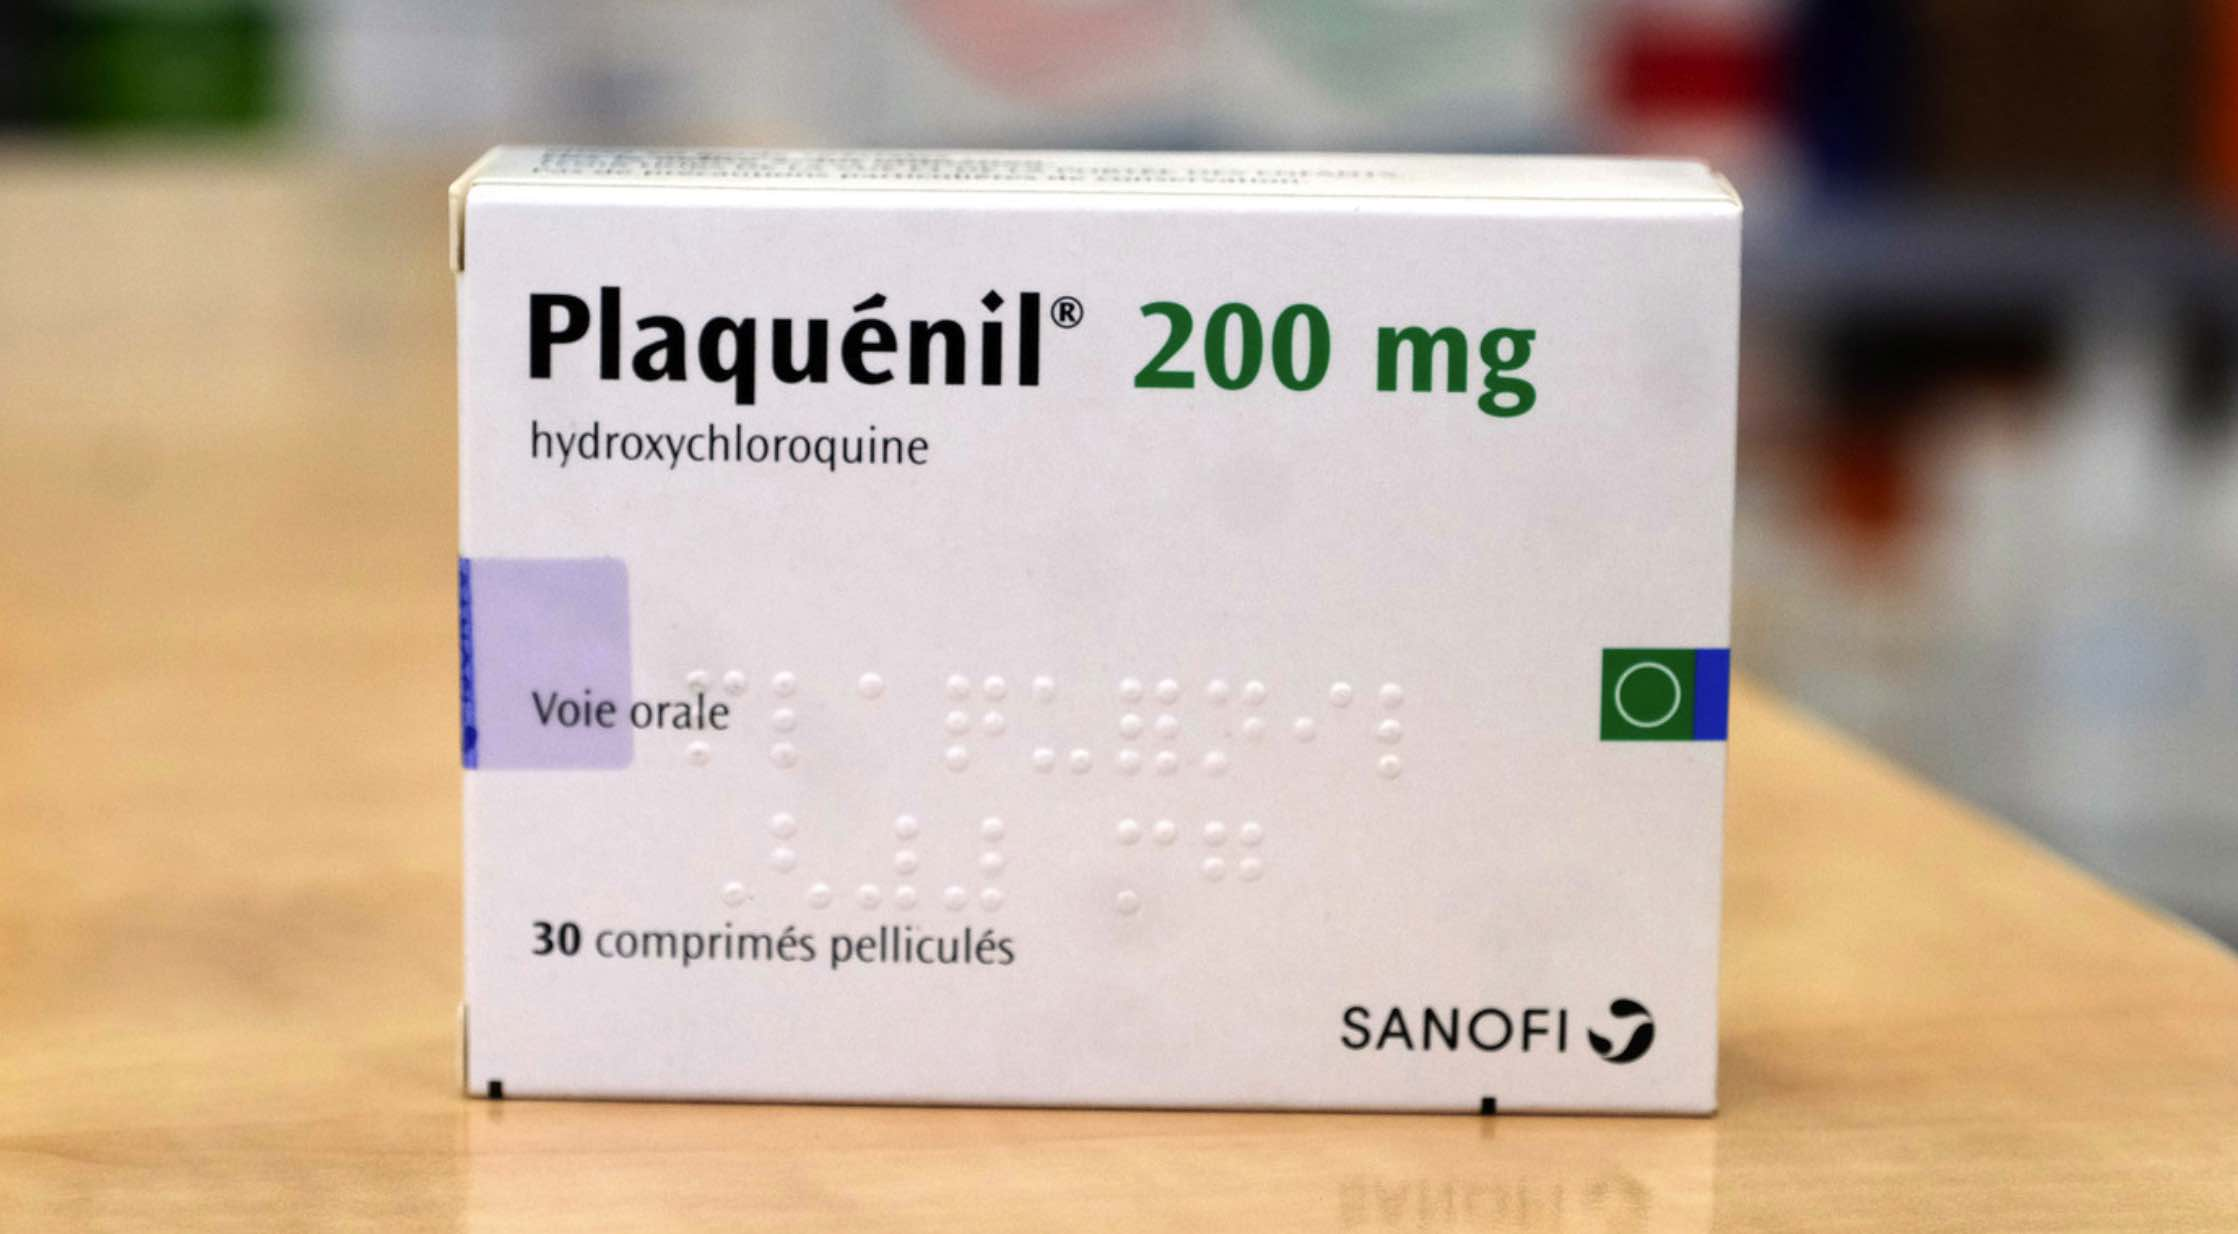 SANOFI Asks French Health Minister Permission to Deliver Hydroxychloroquine to Professor Raoult's Hospital